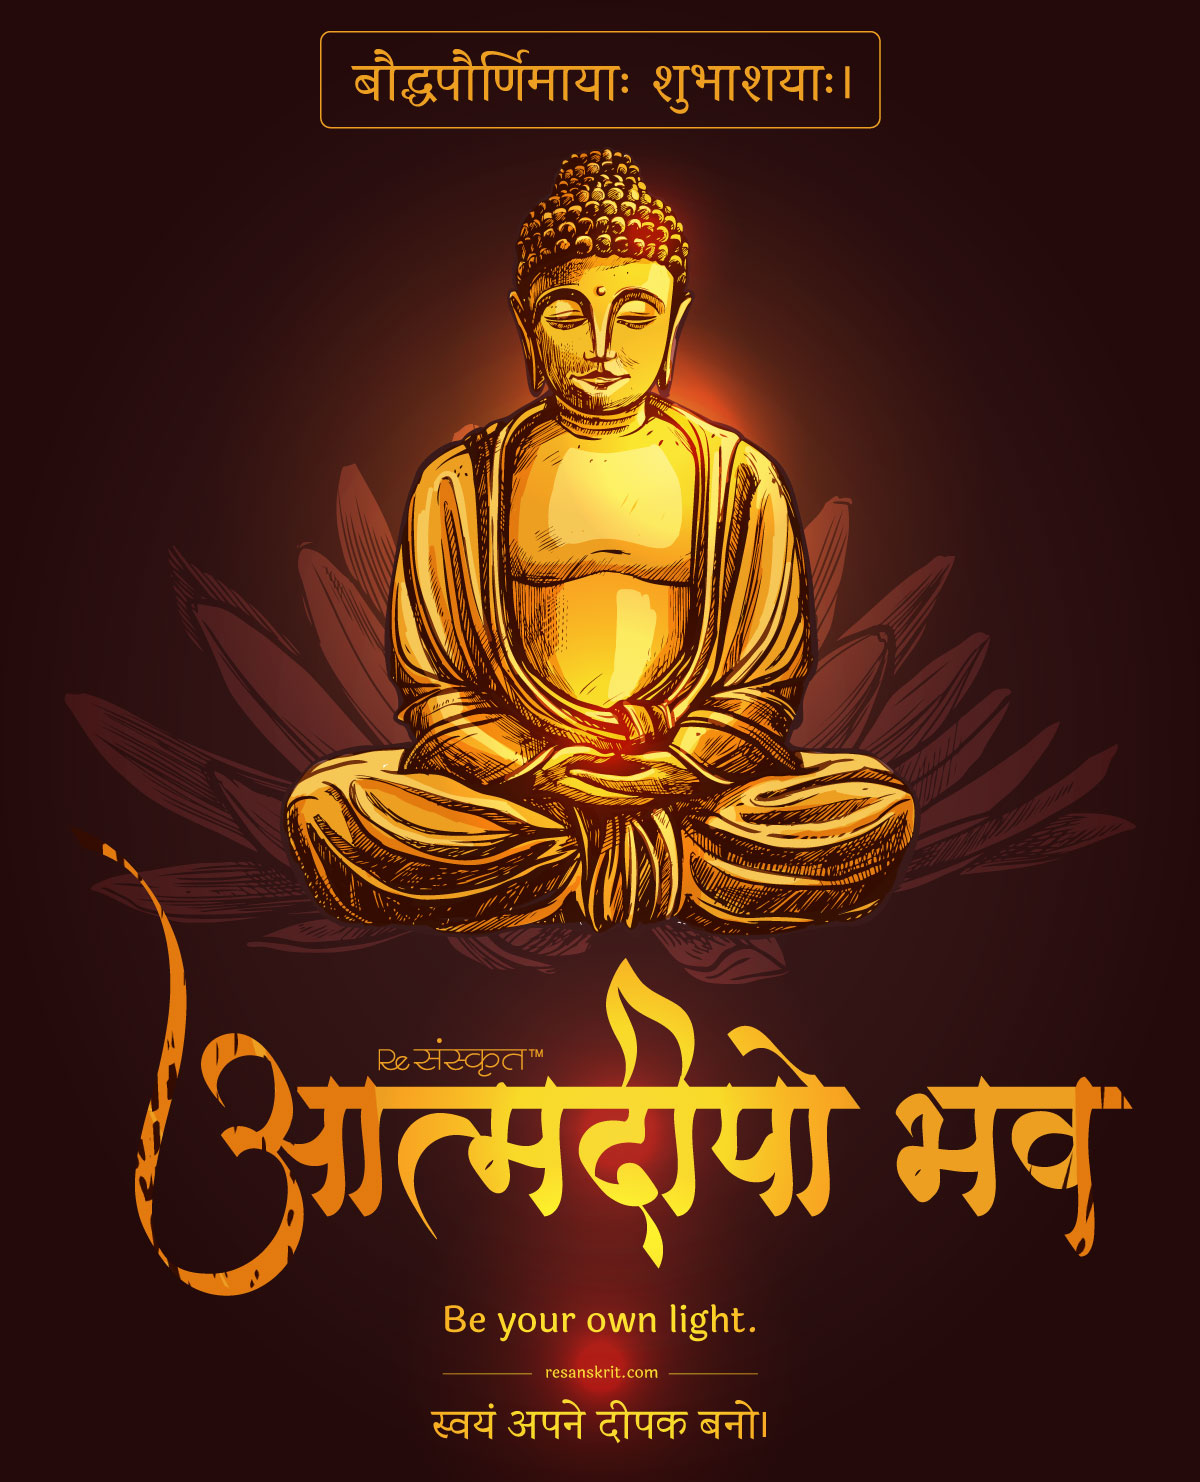 Atmadipo Bhava - Be your own light